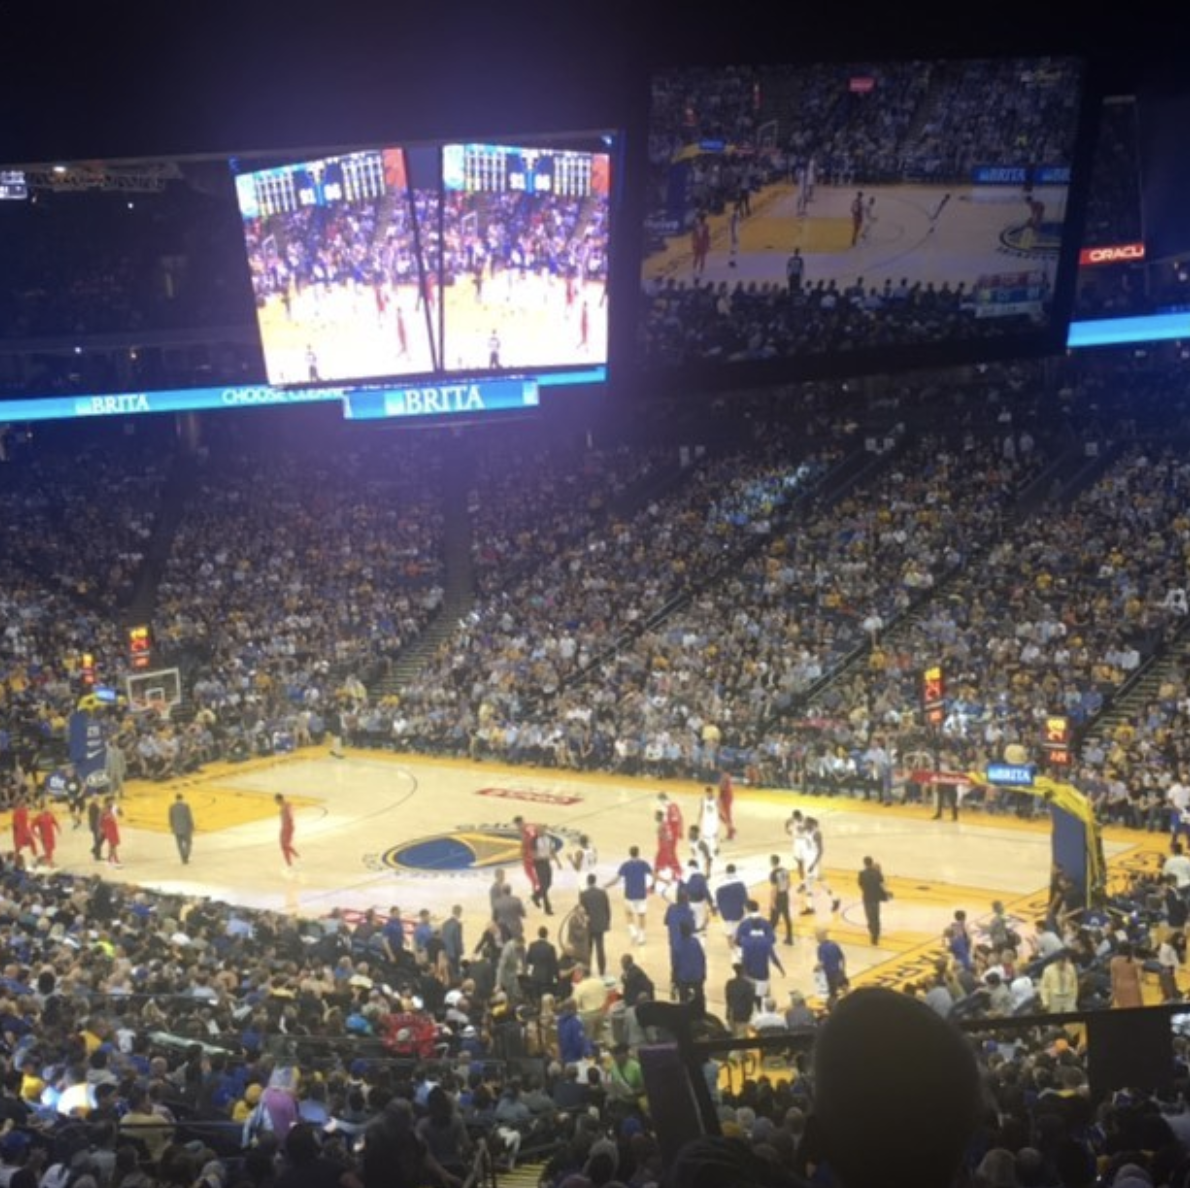 Golden State game!